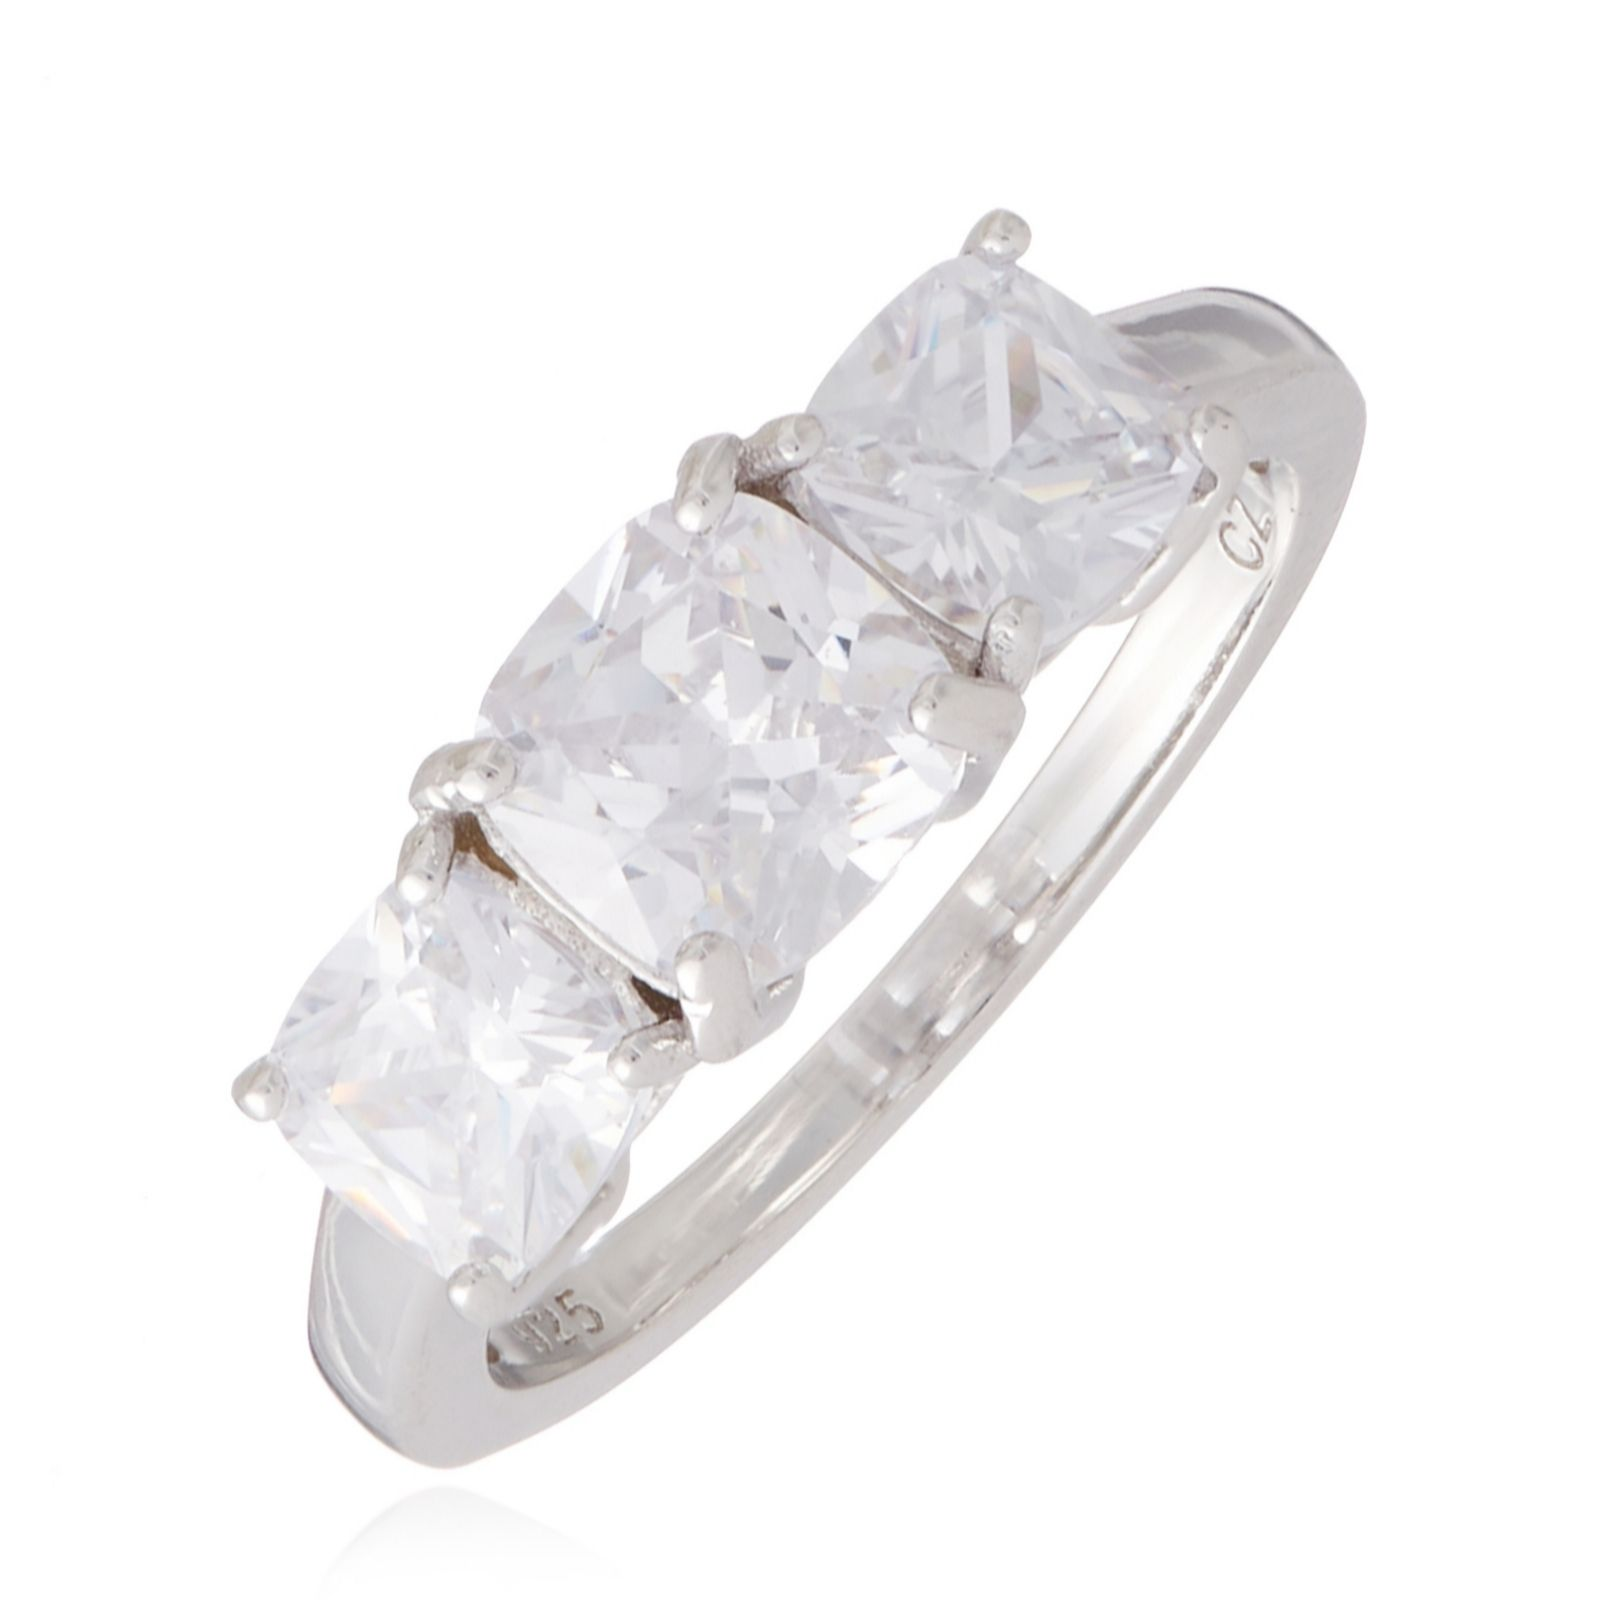 Sterling Silver Solitaire Bridal Ring 2.4 CT Square Halo Engagement Ring Brilliant Round Cut Simulated Stone With Accents